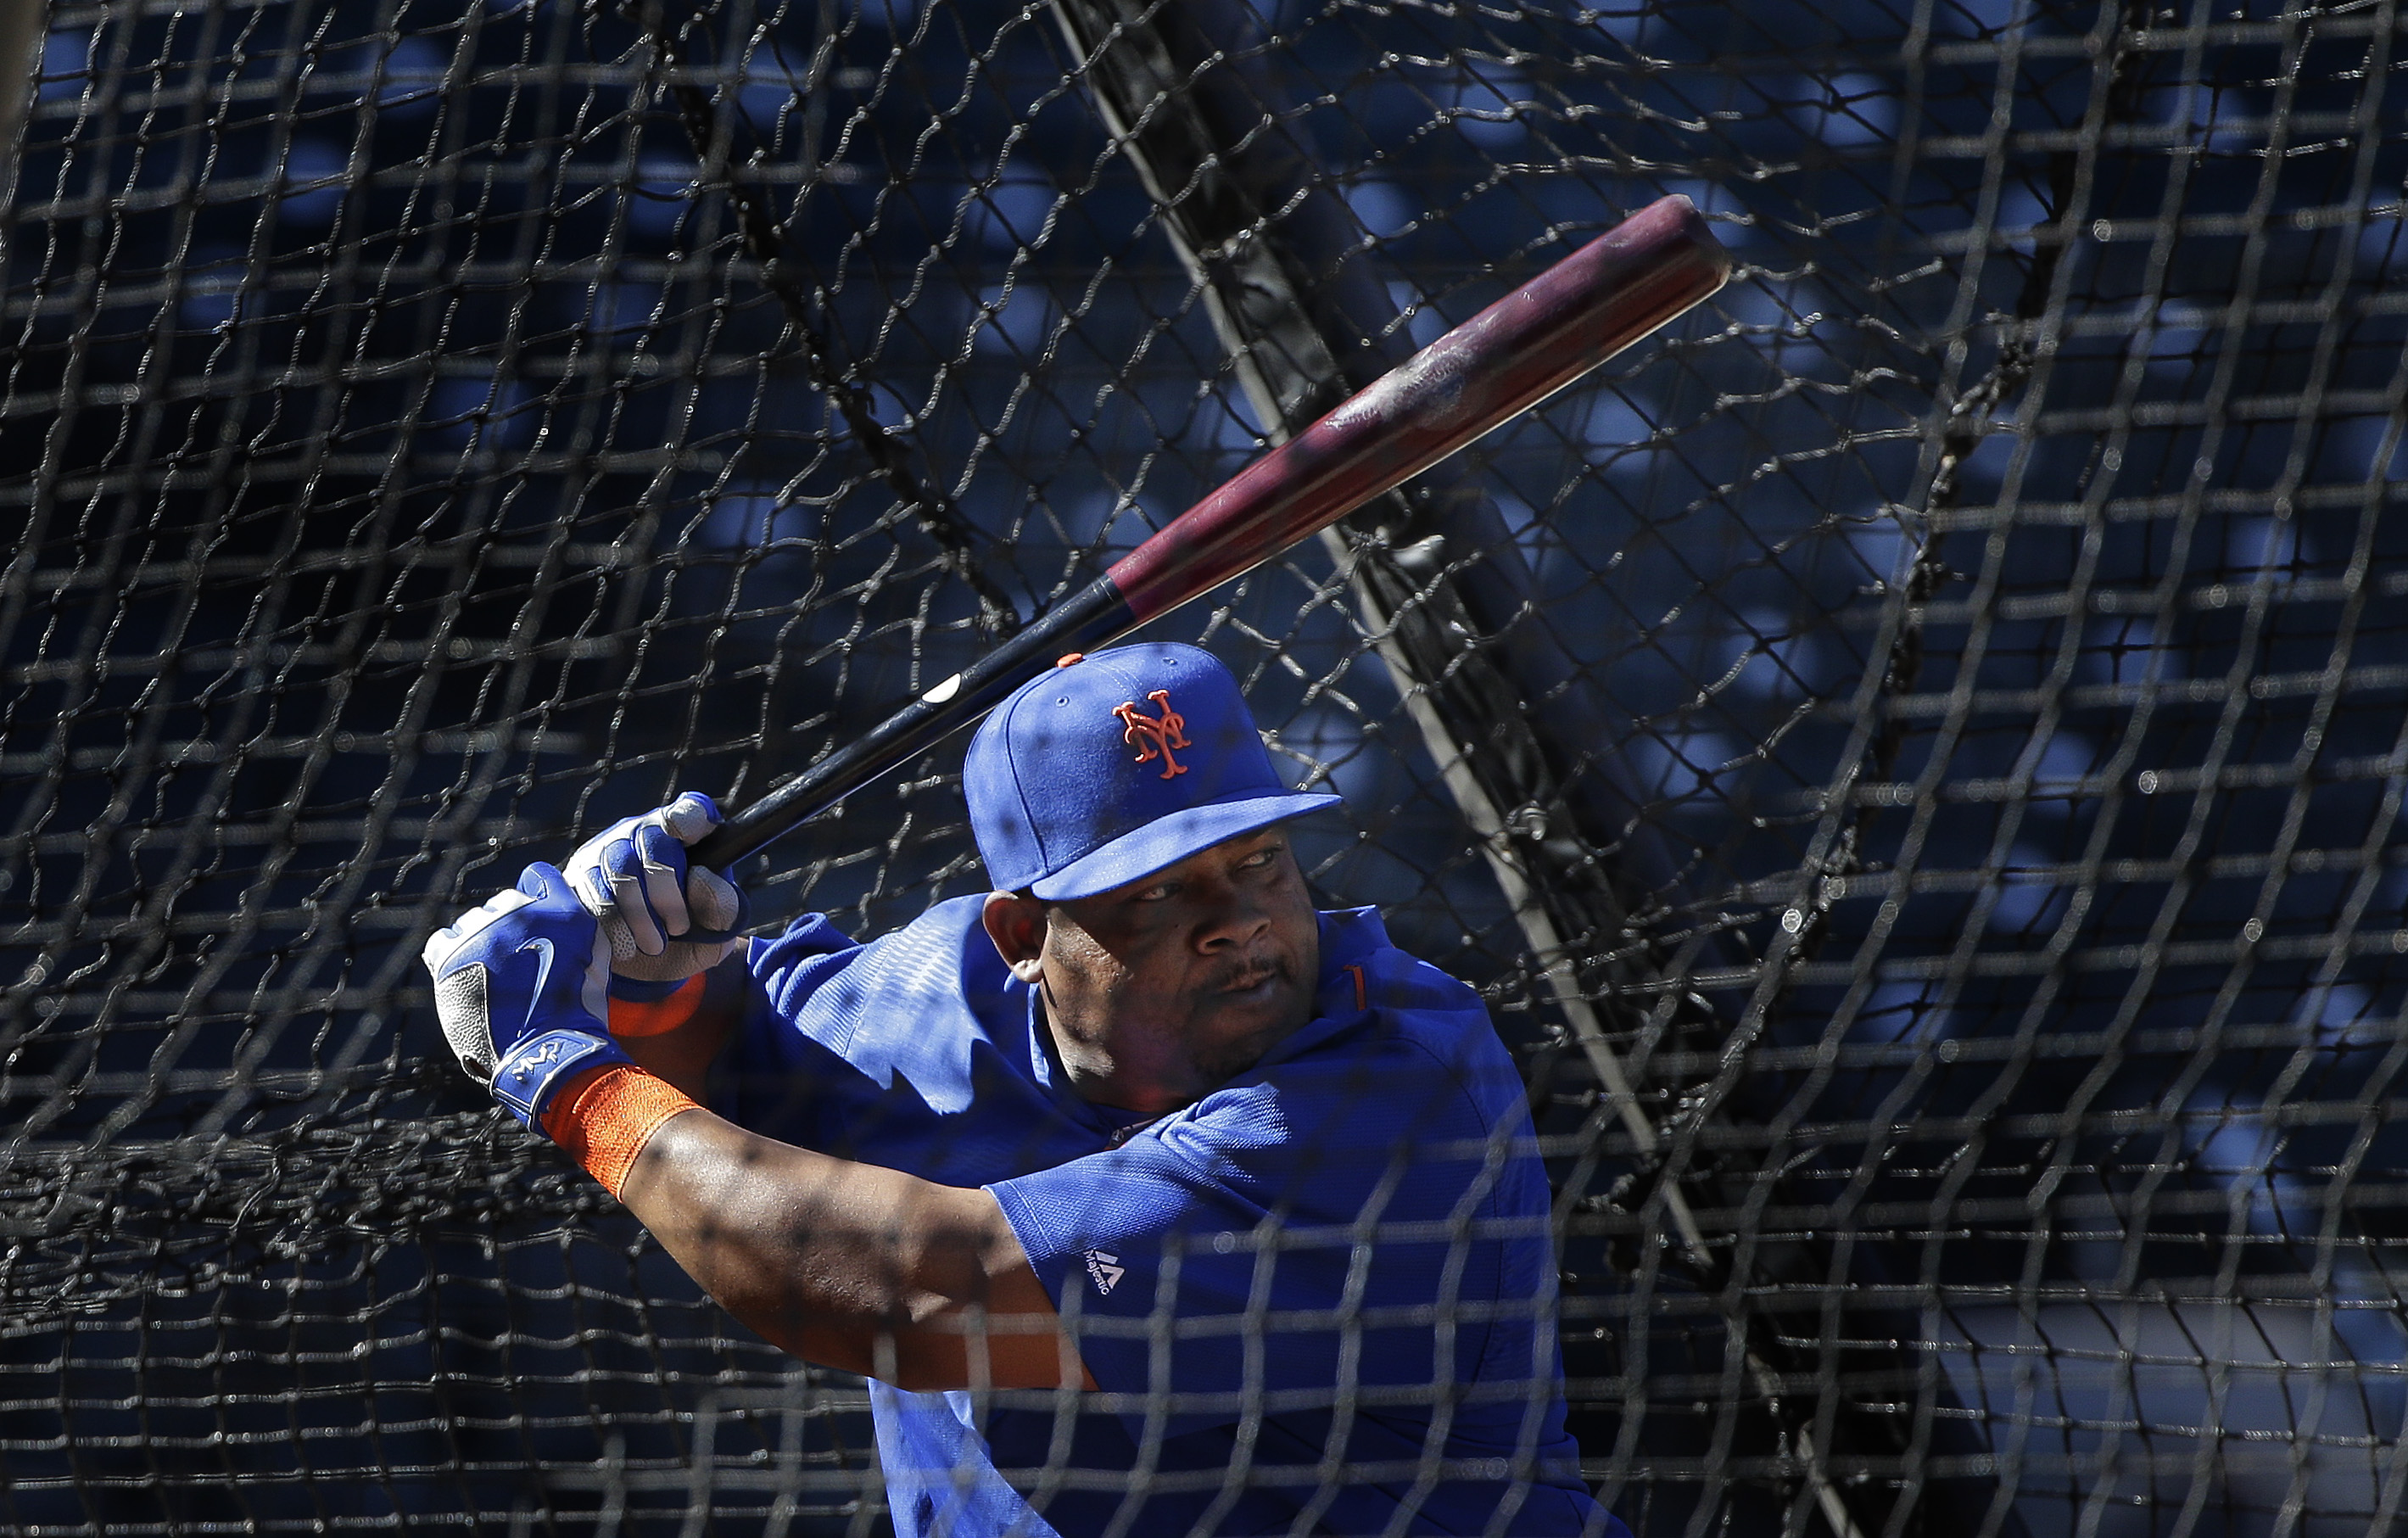 New York Mets' Juan Uribe takes batting practice during a voluntary team workout, Friday, Oct. 23, 2015, in New York. After sweeping the Chicago Cubs to win the NLCS, the Mets will play in the World Series against the winner of the ALCS. (AP Photo/Julie J